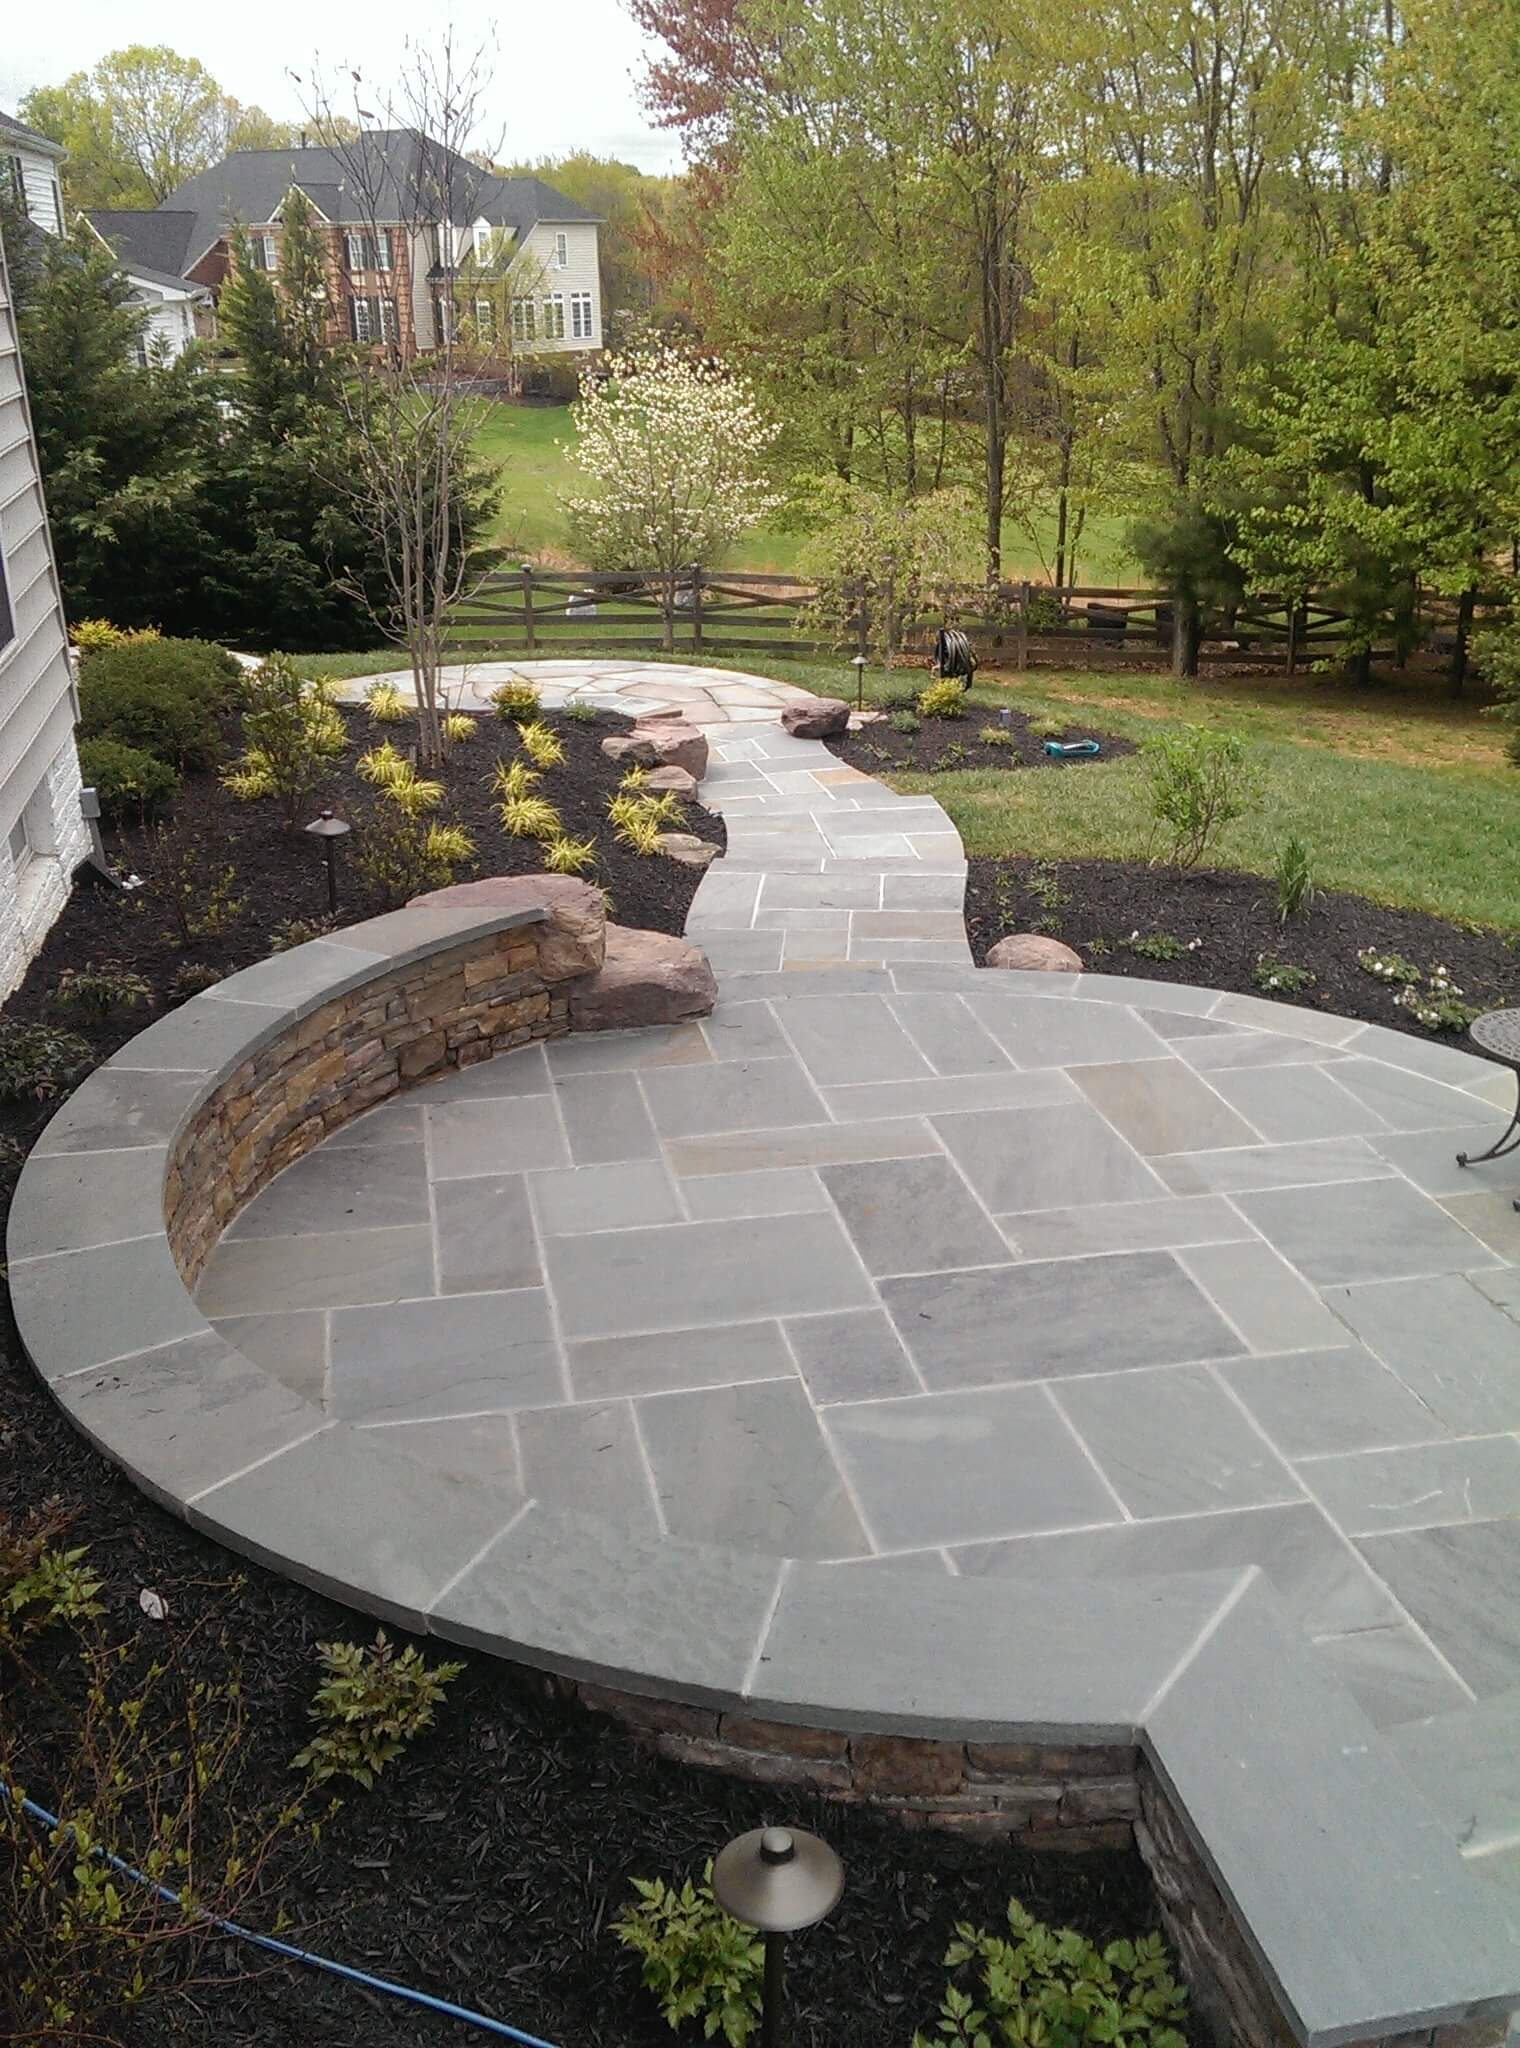 333 Circular Flagstone Patio with Flagstone Border and PA Beige Stone Sitting Wall with Flagstone Cap